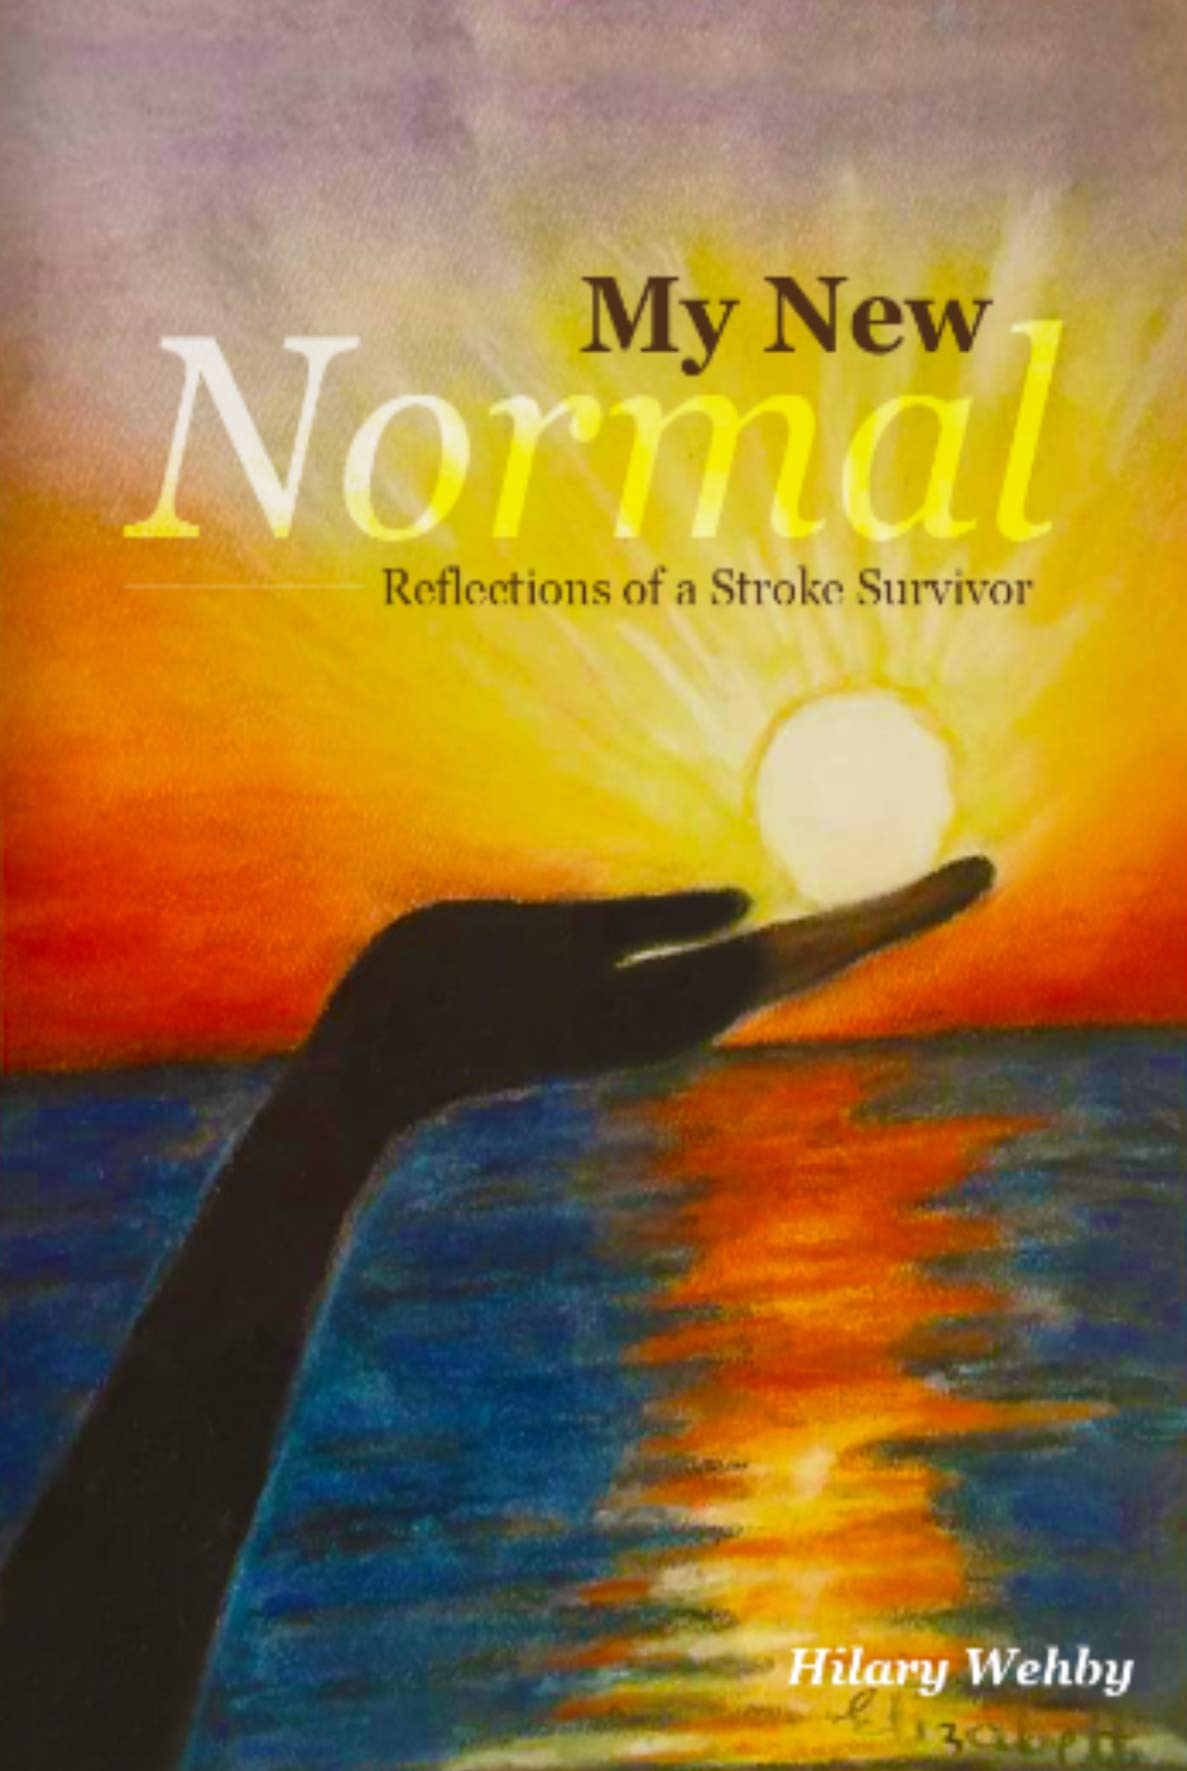 My New Normal Reflections Of A Stroke Survivor Hilary Wehby Berl